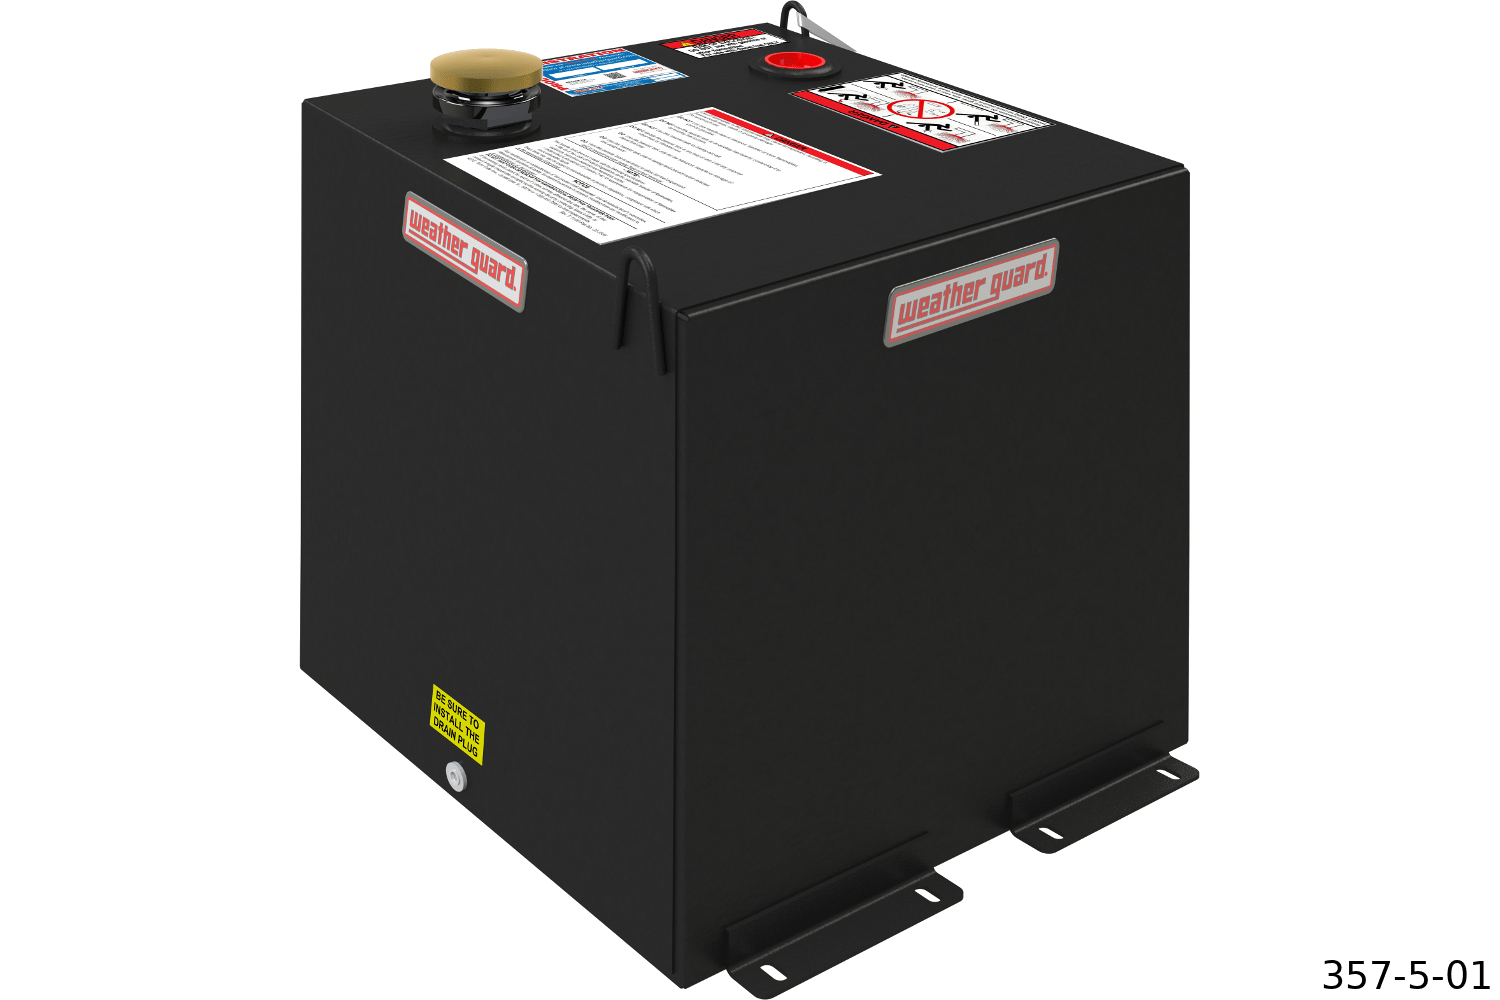 Weather Guard cubed transfer tanks shown in black steel.